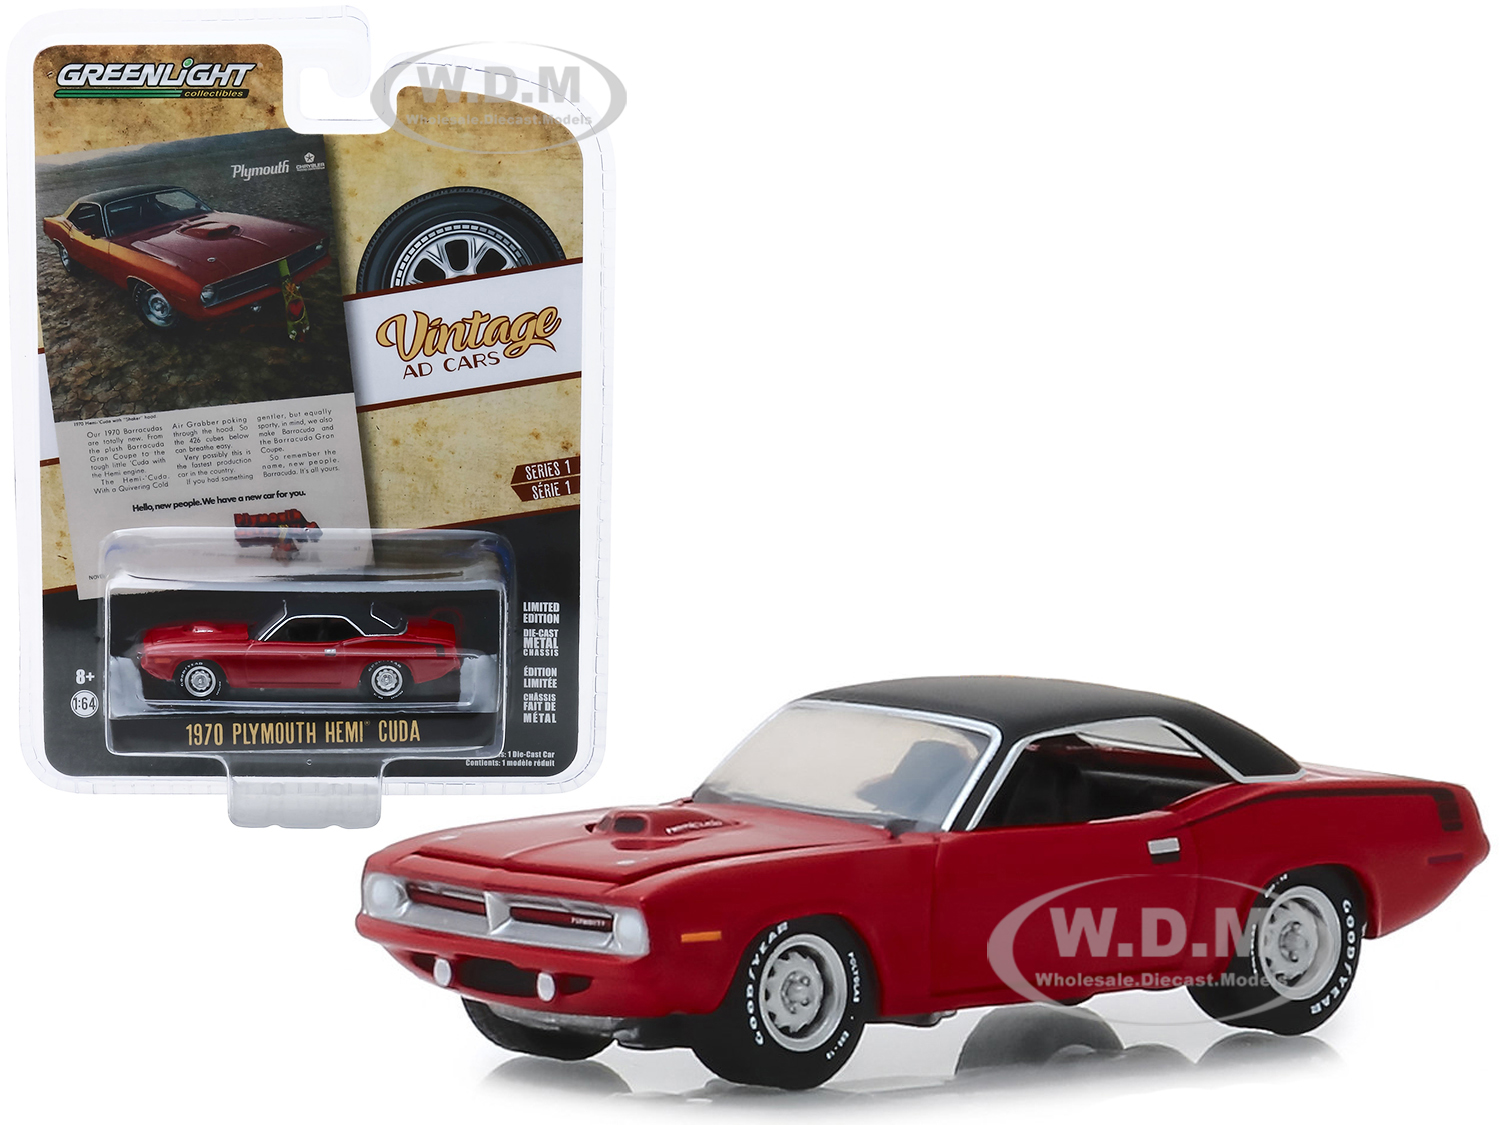 1970 Plymouth HEMI Barracuda Red with Black Top Hello New People. We Have A New Car For You Vintage Ad Cars Series 1 1/64 Diecast Model Car by Greenlight